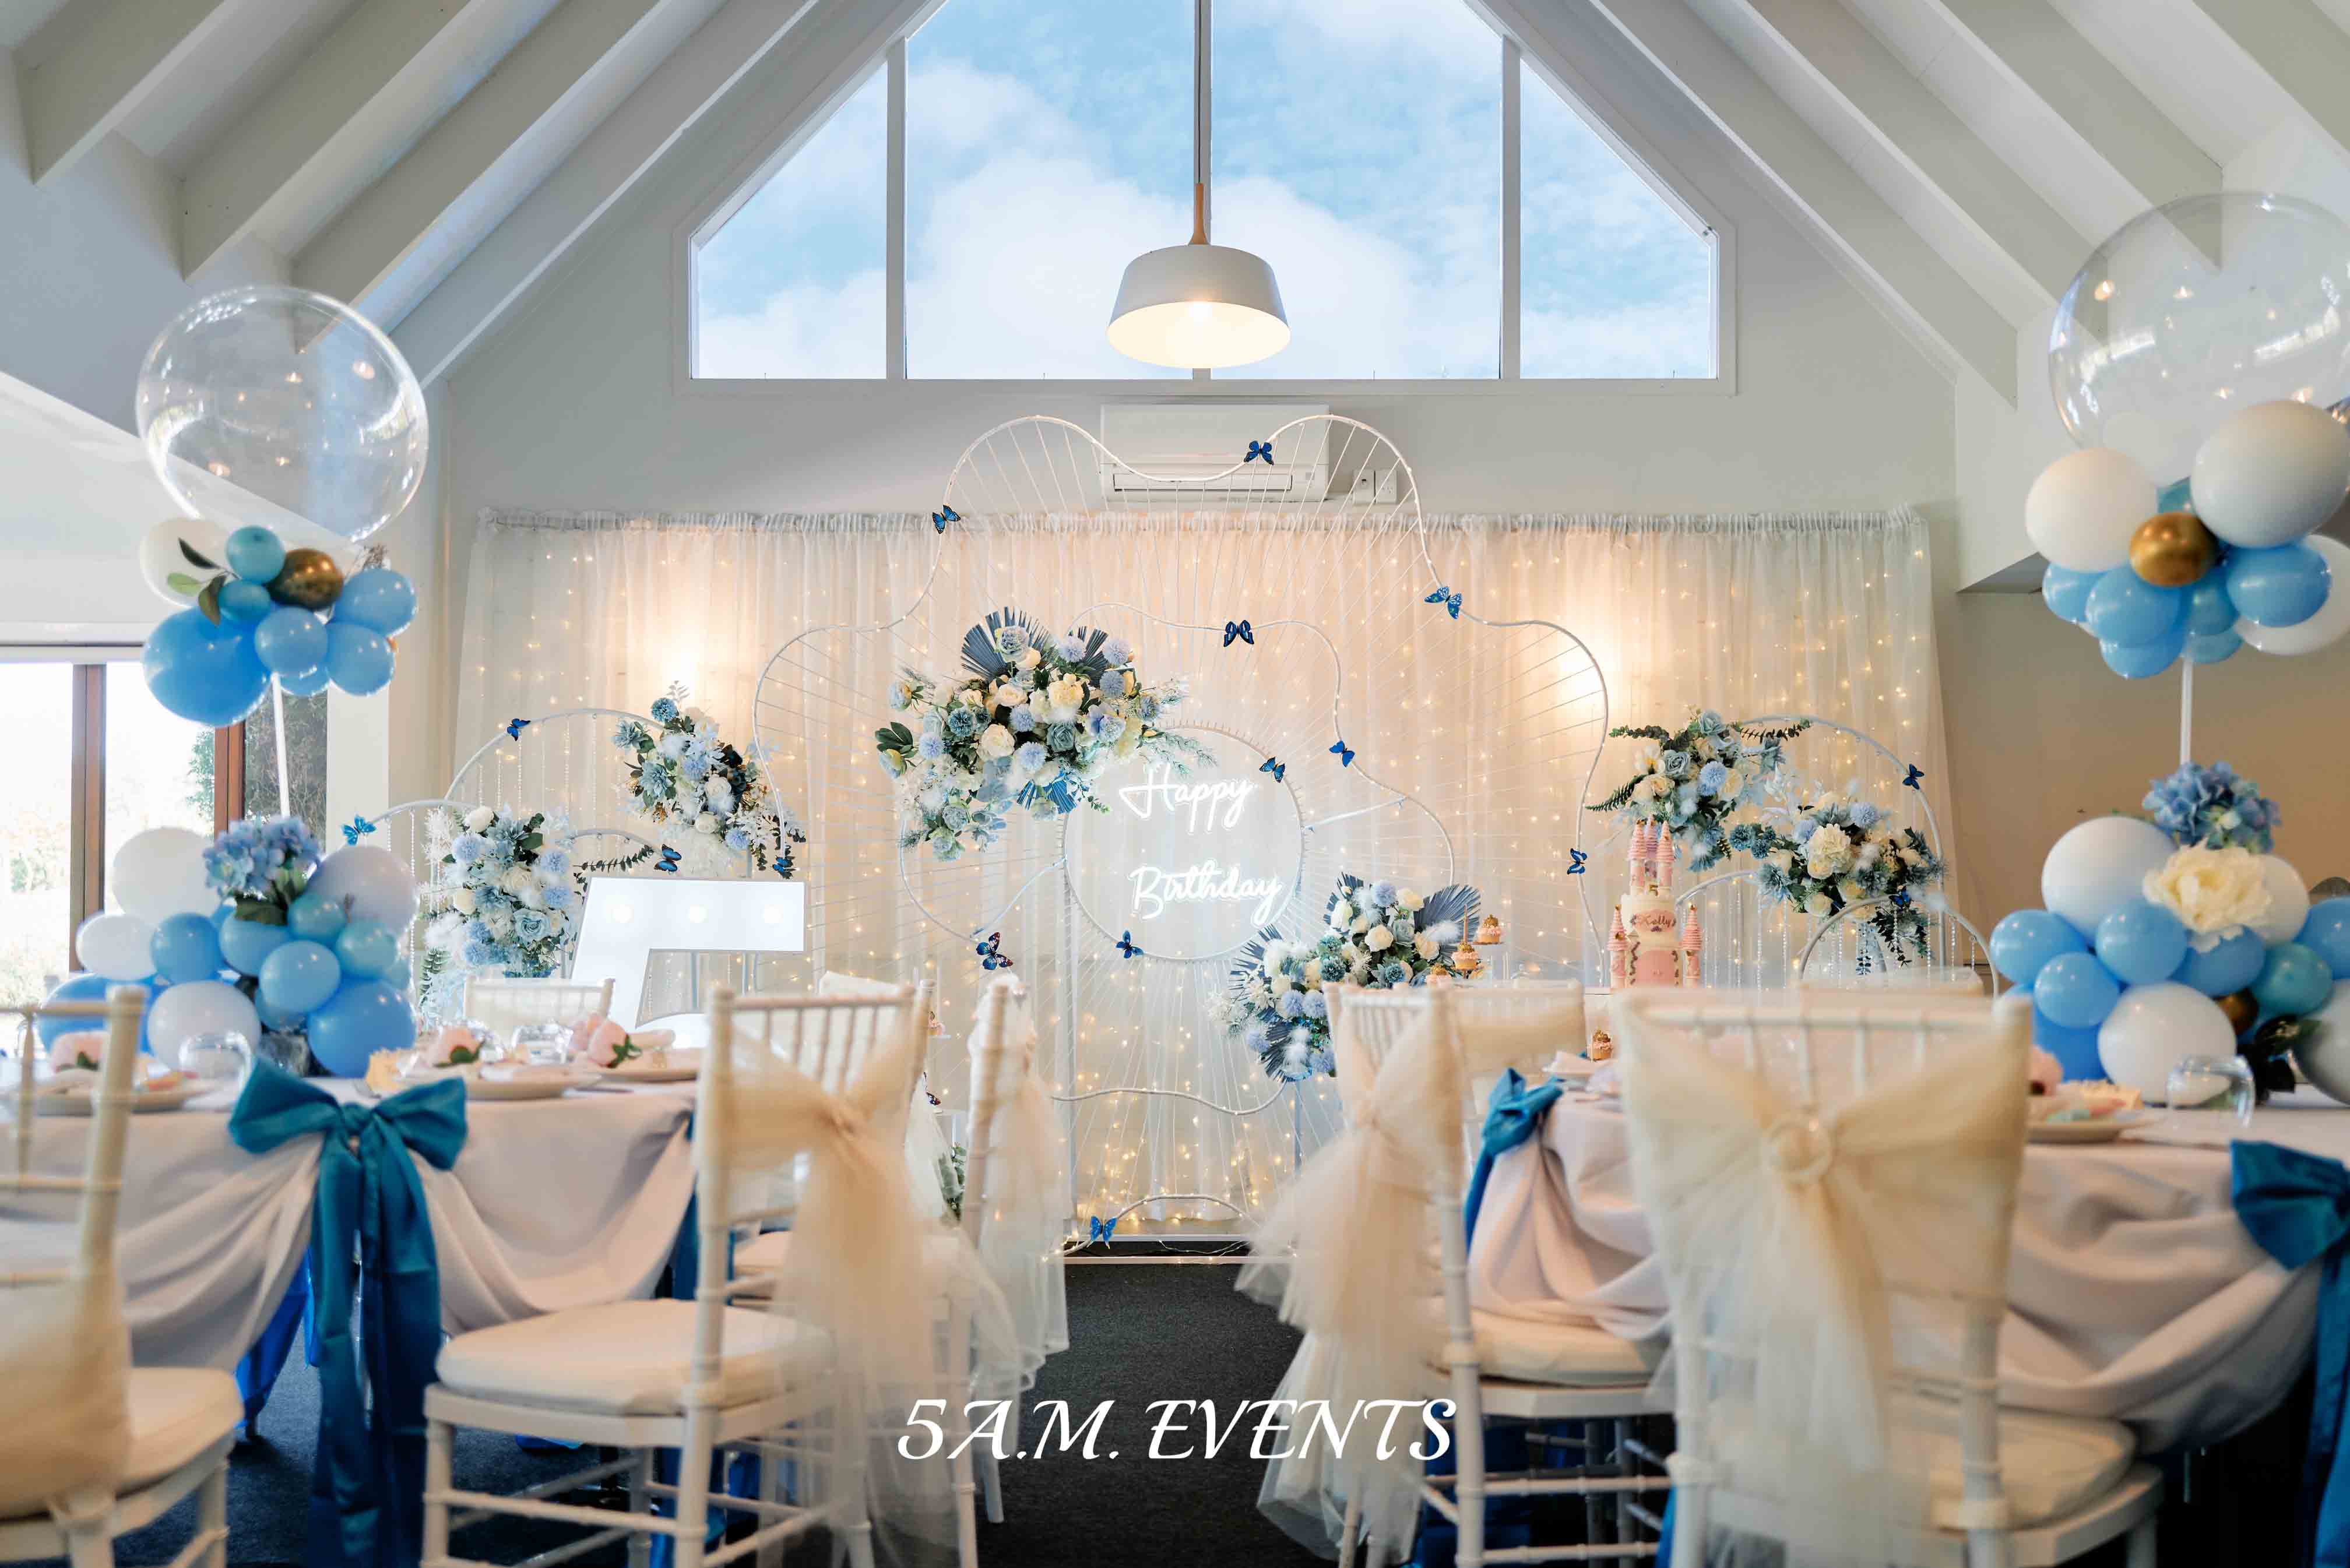 Florals by Luxe Dream Floral Studio, Event Styling 5am